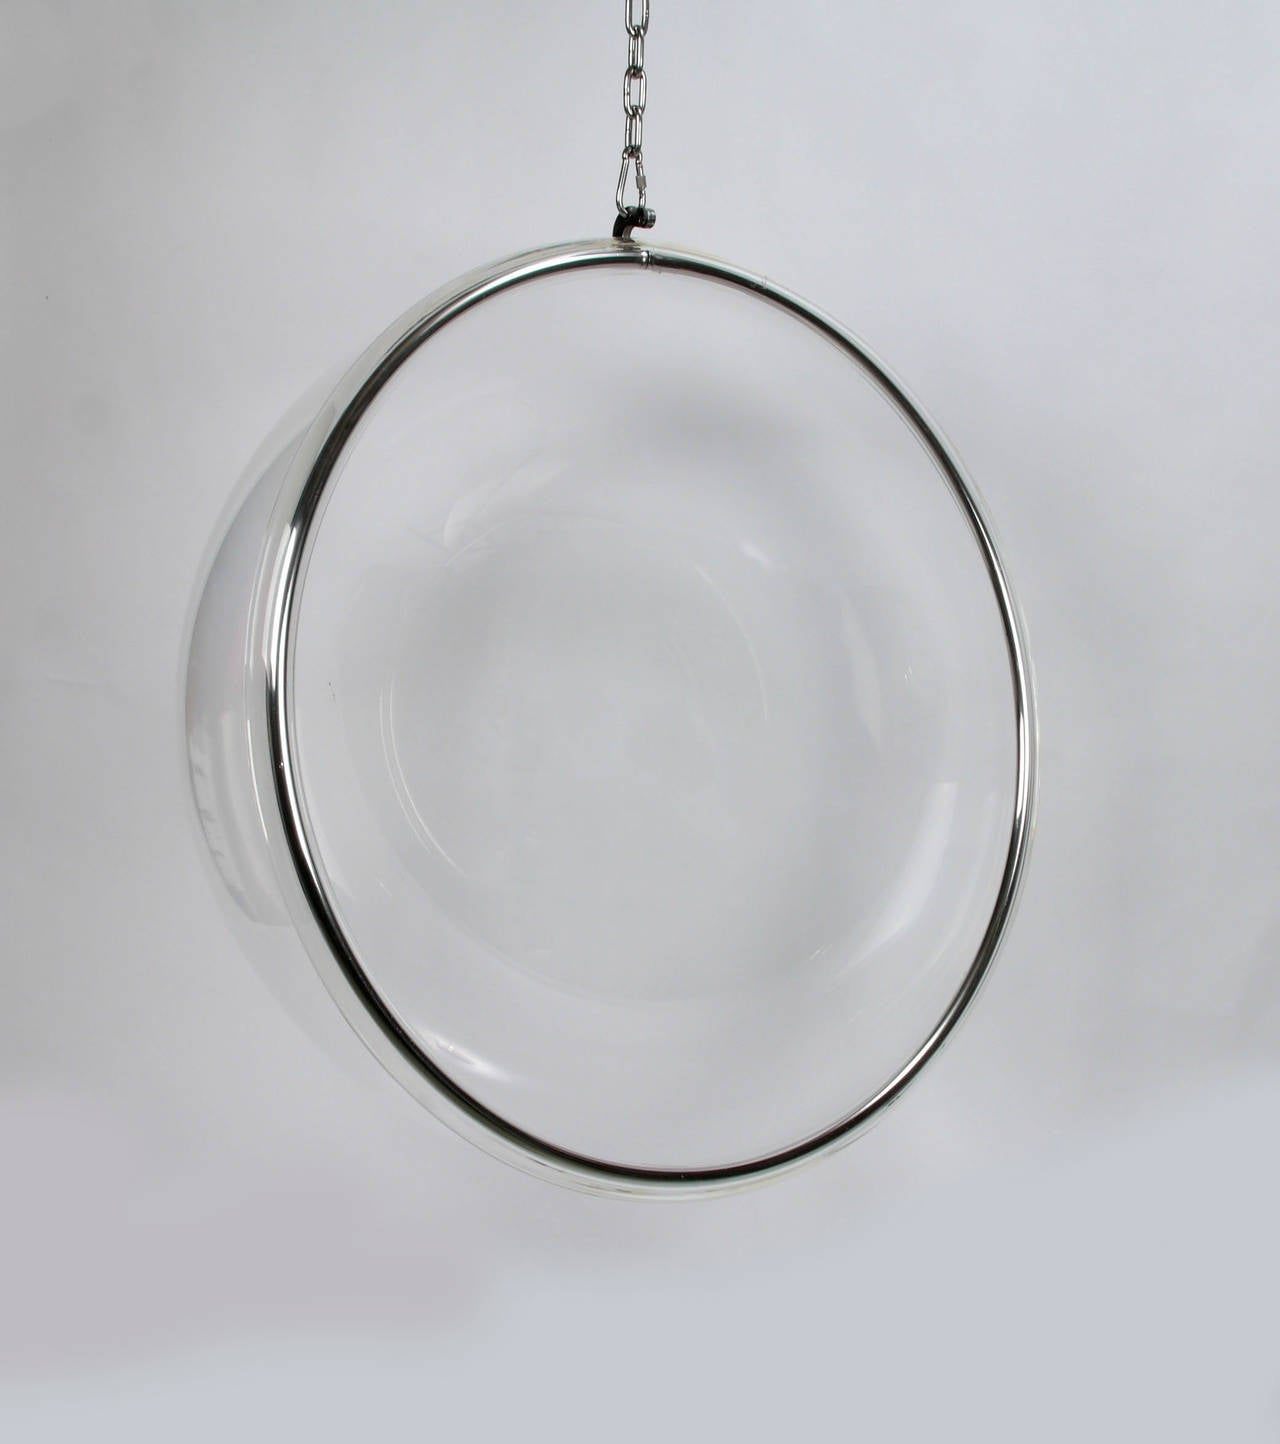 Danish Eero Aarnio by Adelta Hanging Lucite Bubble Chair For Sale  sc 1 st  1stDibs & Eero Aarnio by Adelta Hanging Lucite Bubble Chair For Sale at 1stdibs